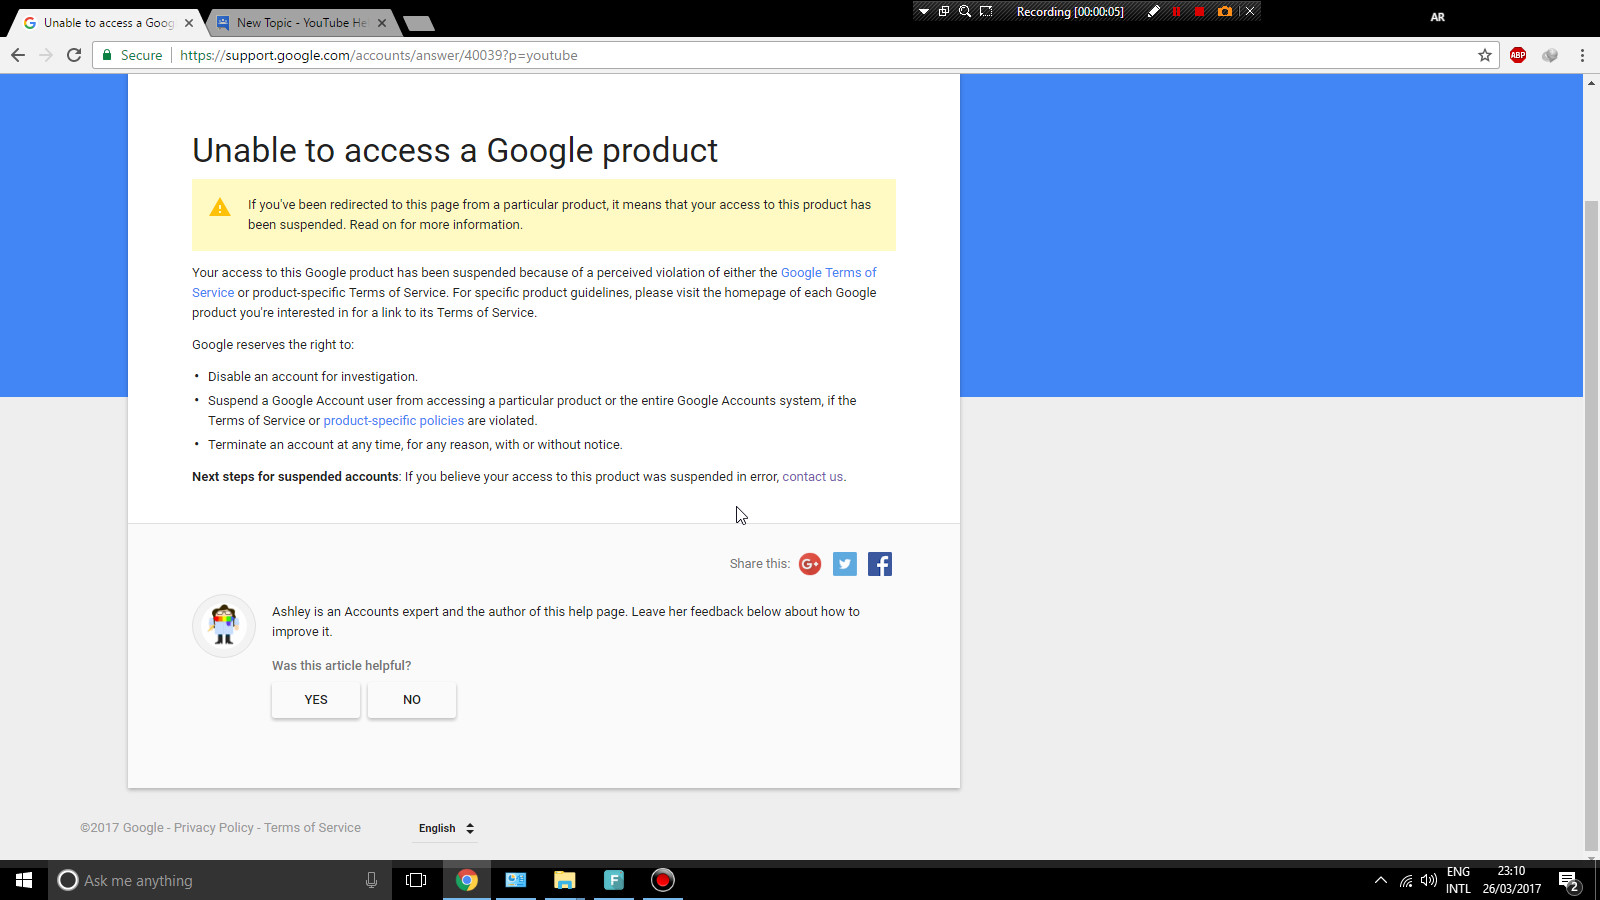 Can't sign into youtube account - YouTube Help